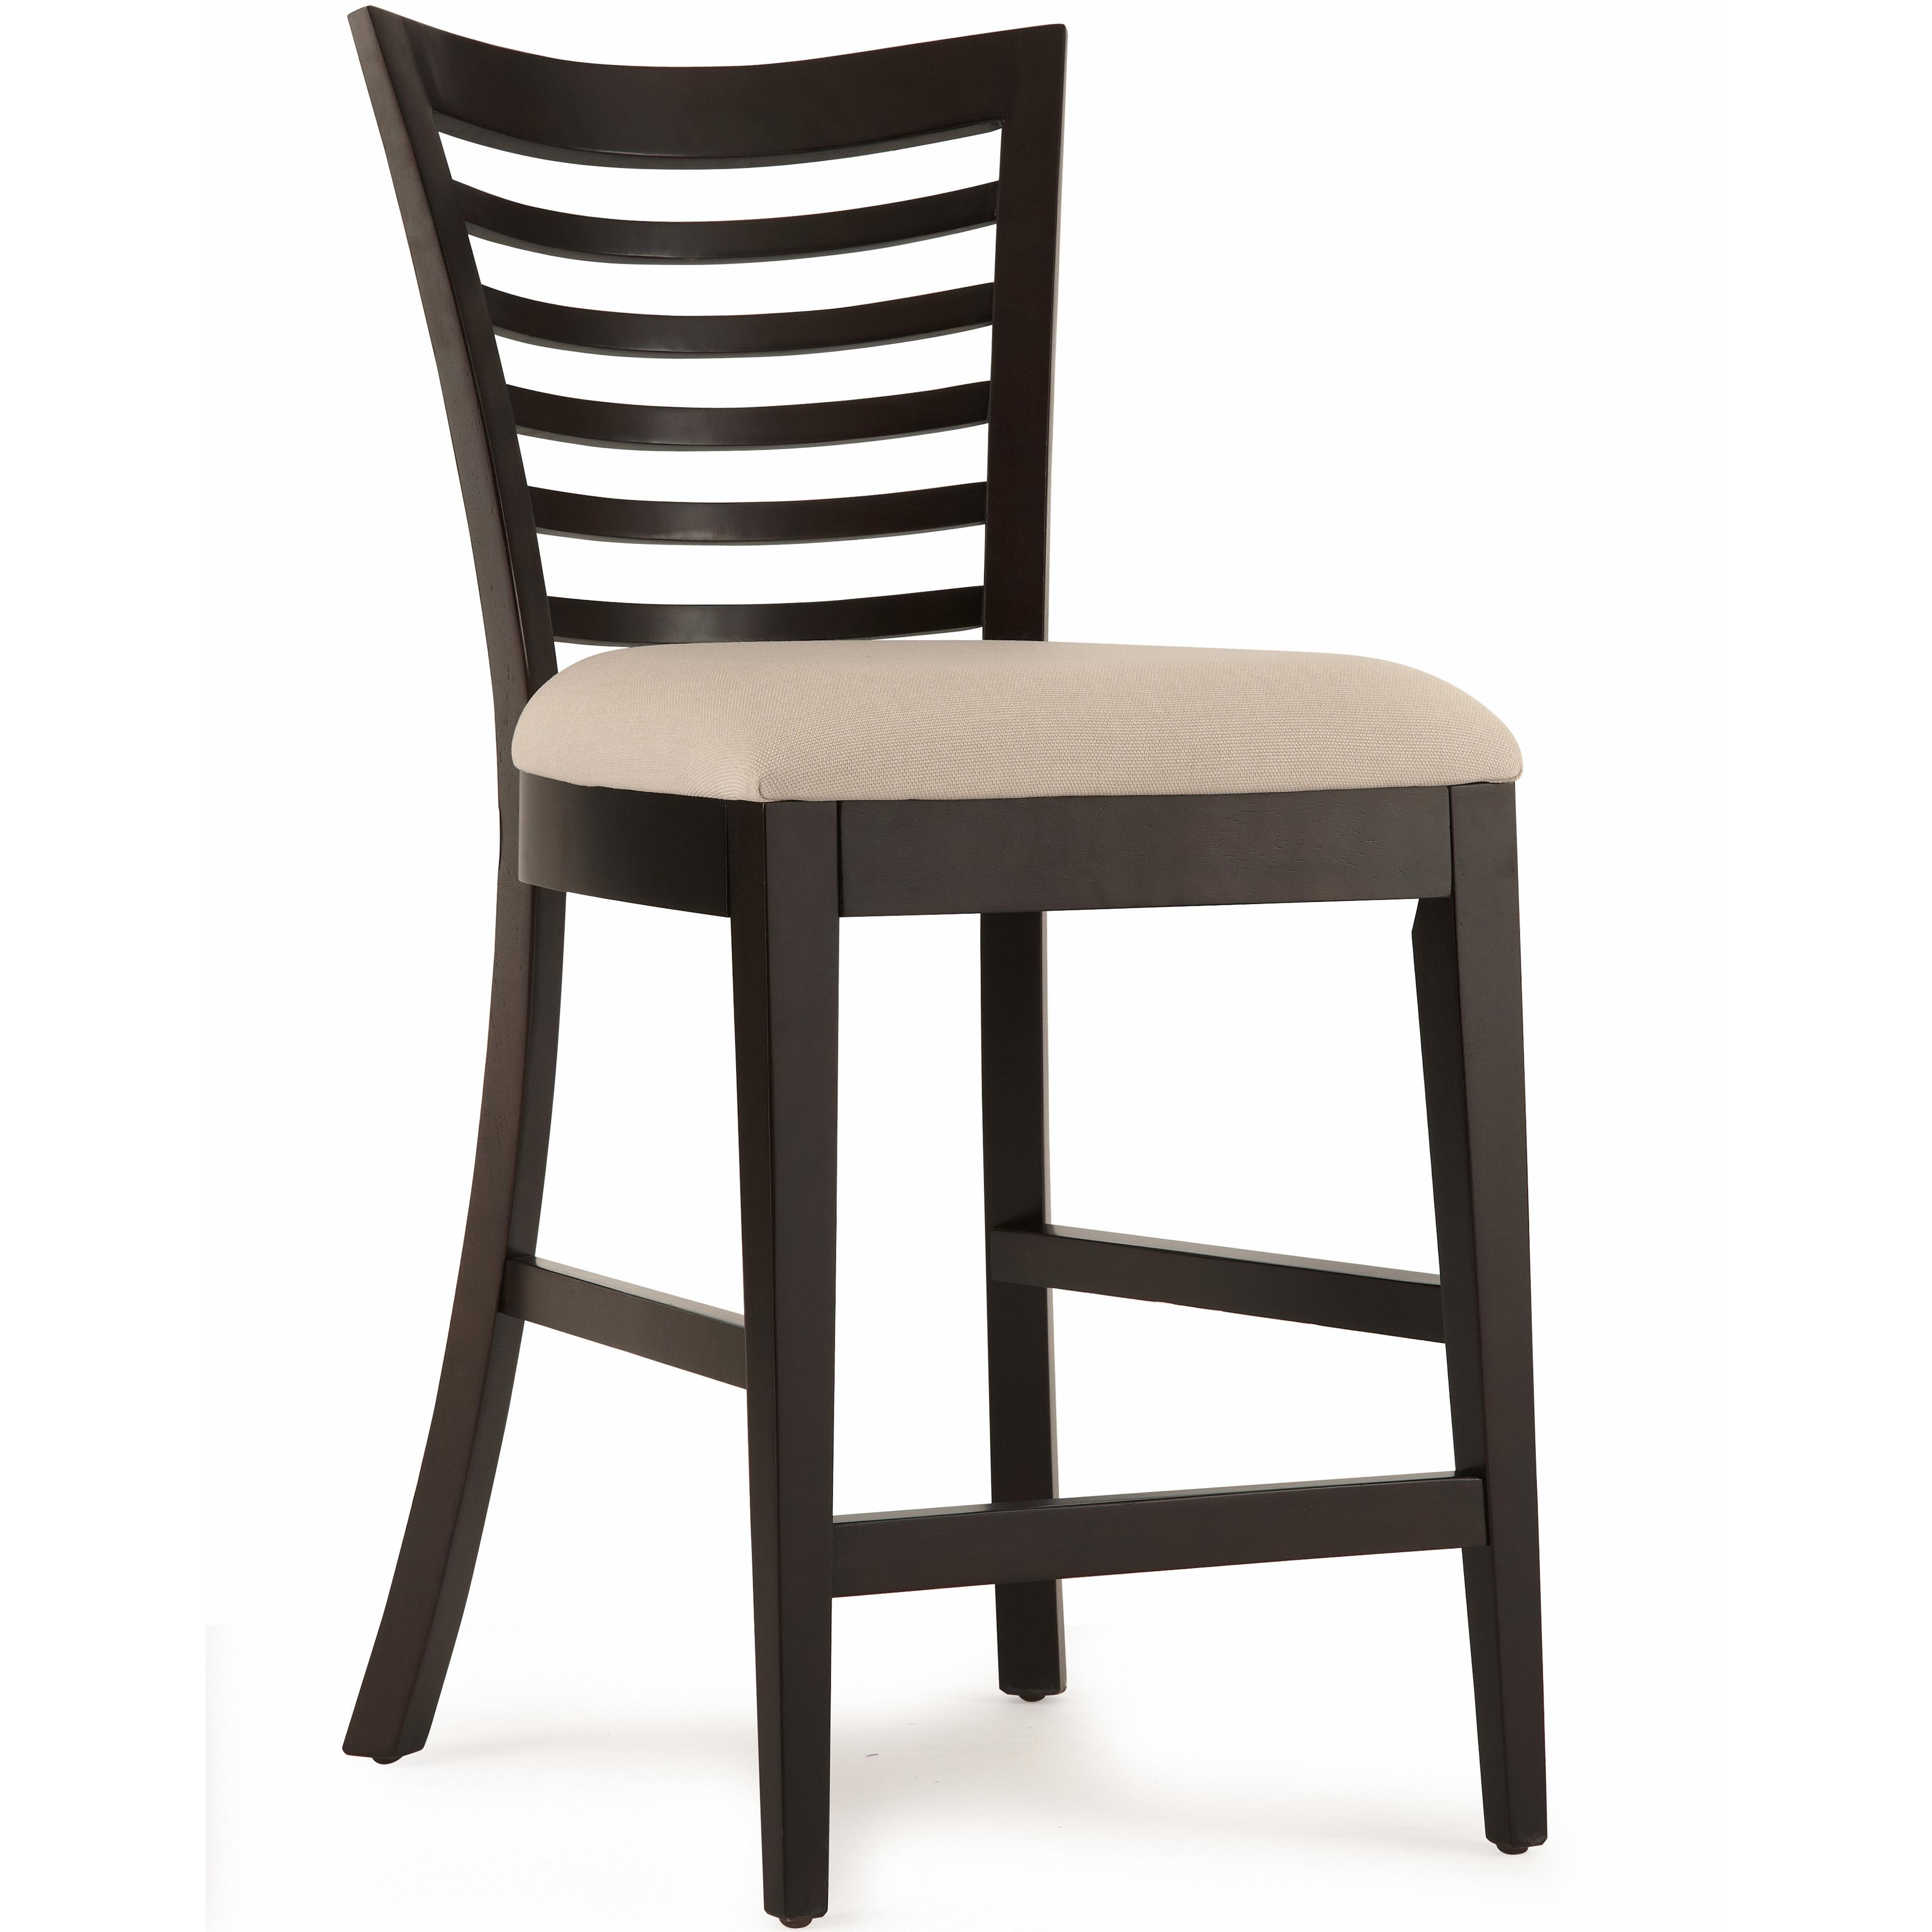 Belfort Select East Gate Open Slat Back Cafe Chair - Item Number: 355-140